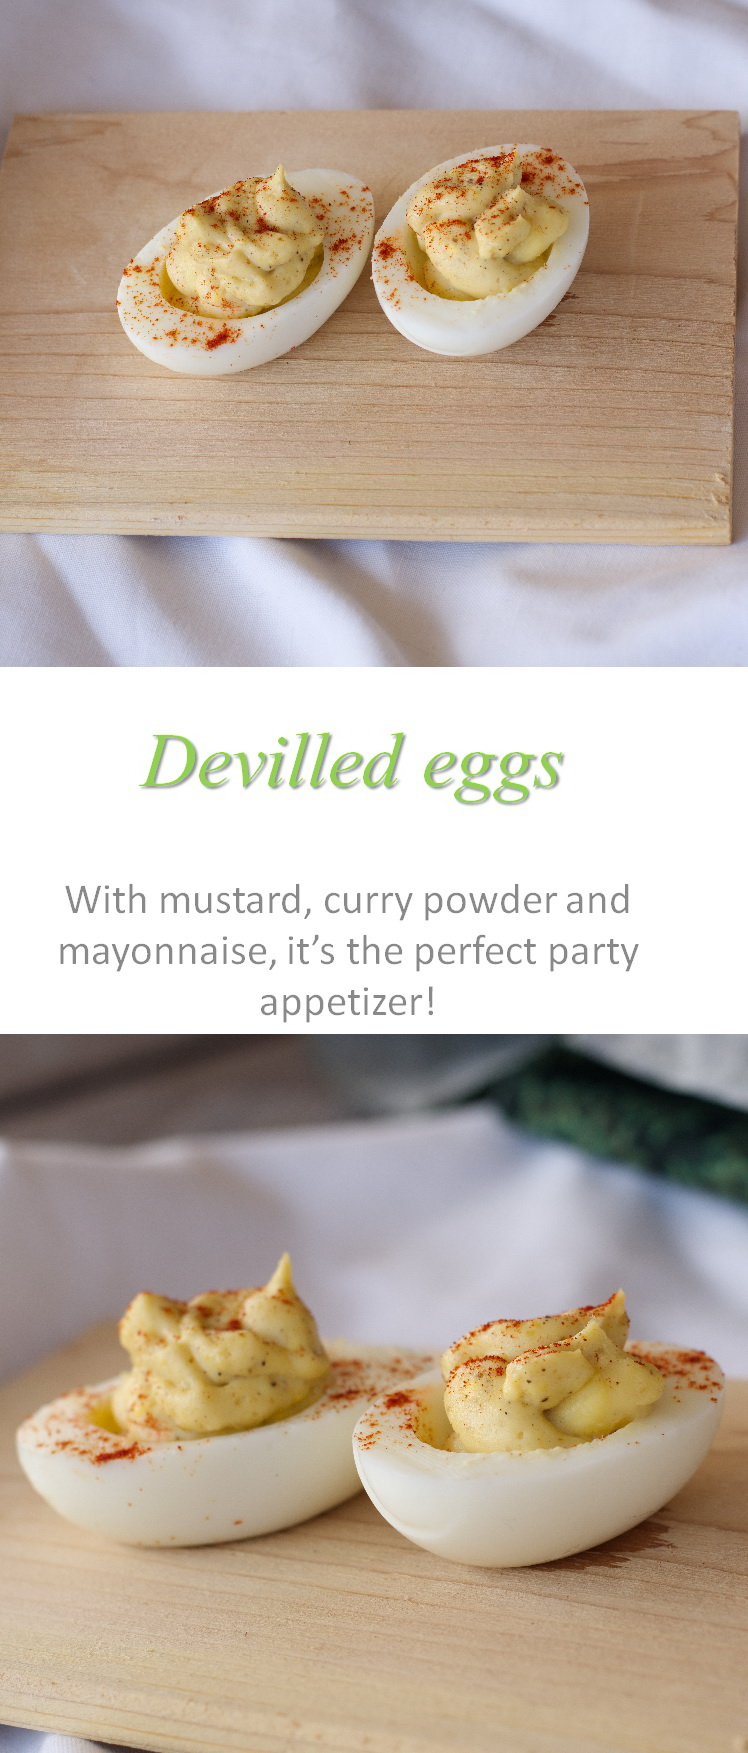 These devilled eggs are the standard potluck appetizer that are gluten and dairy free and so easy to make. #deviledeggs #potluck #glutenfree #dairyfree #paleo #whole30 #cookathome